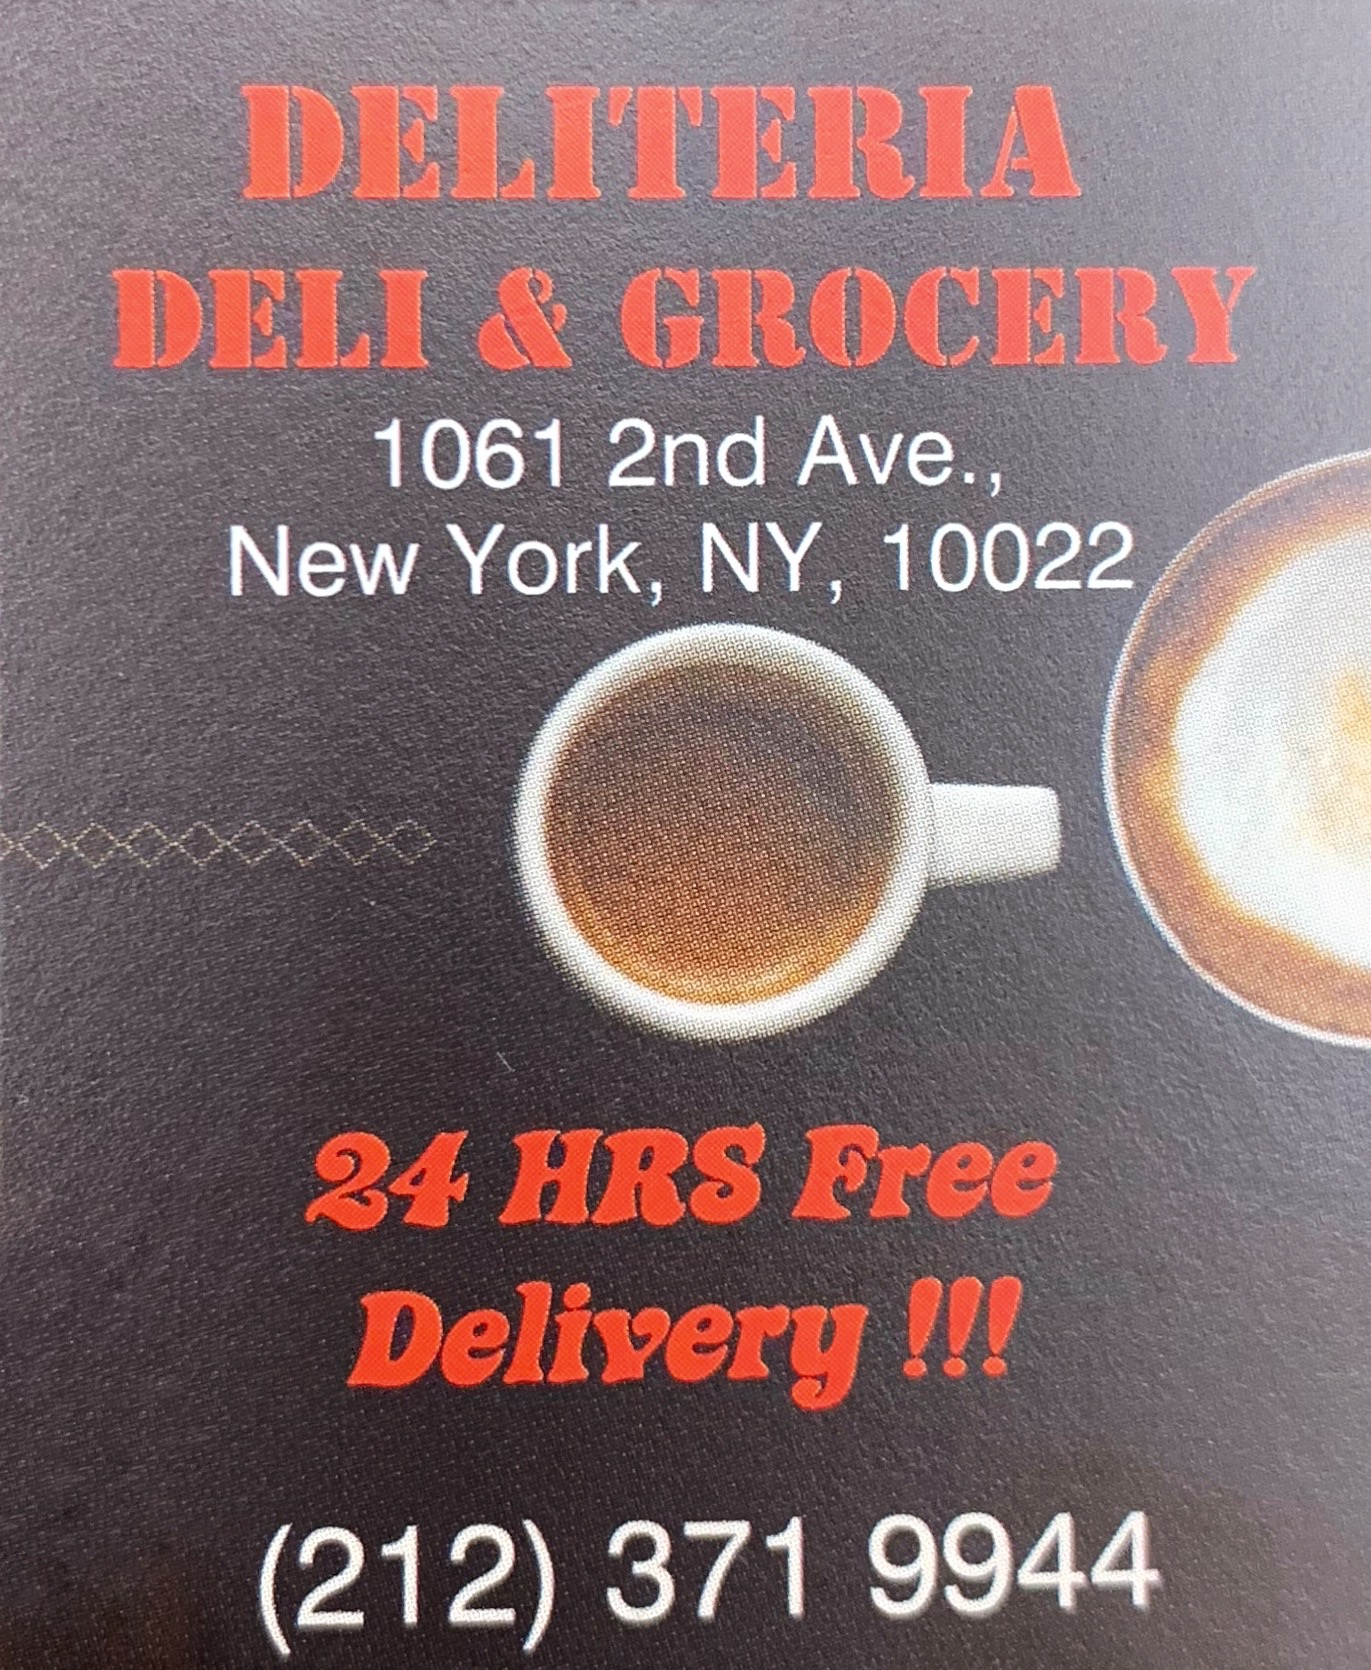 Uptown Manhattan- Find our Party-Sized mixers at Deliteria (2nd Ave x 56th st)